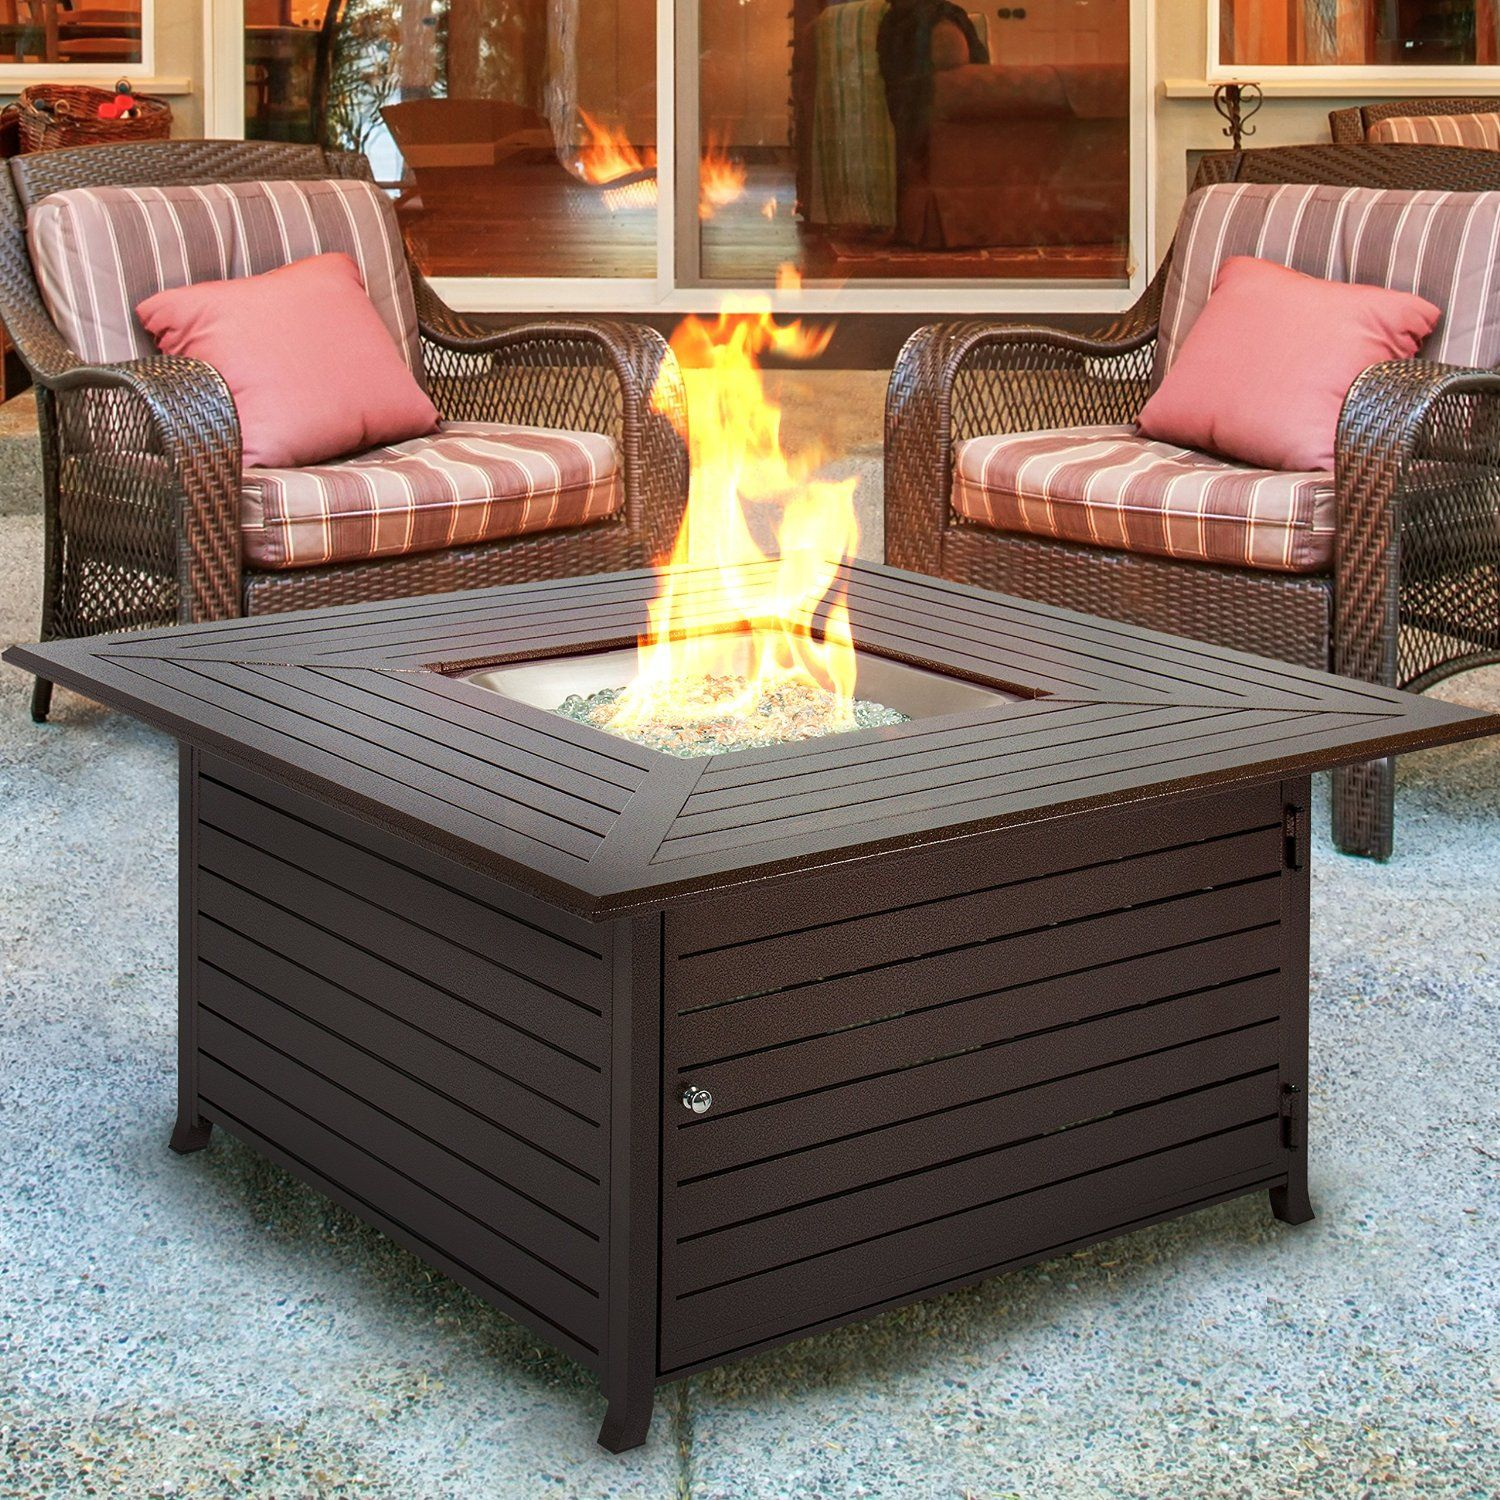 Firepits Patio Heaters At Brookstone Shop Now Backyard Fire Fire Pit Backyard Outdoor Fire Pit Table